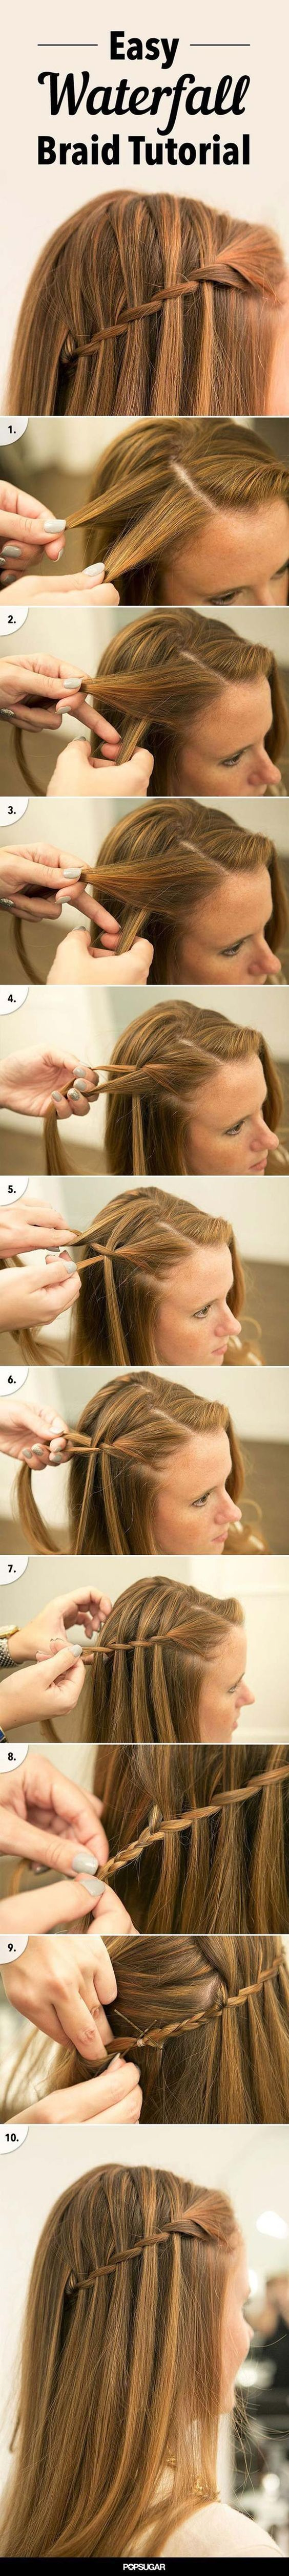 Best hairstyles for long hair waterfall braid tutorial step by